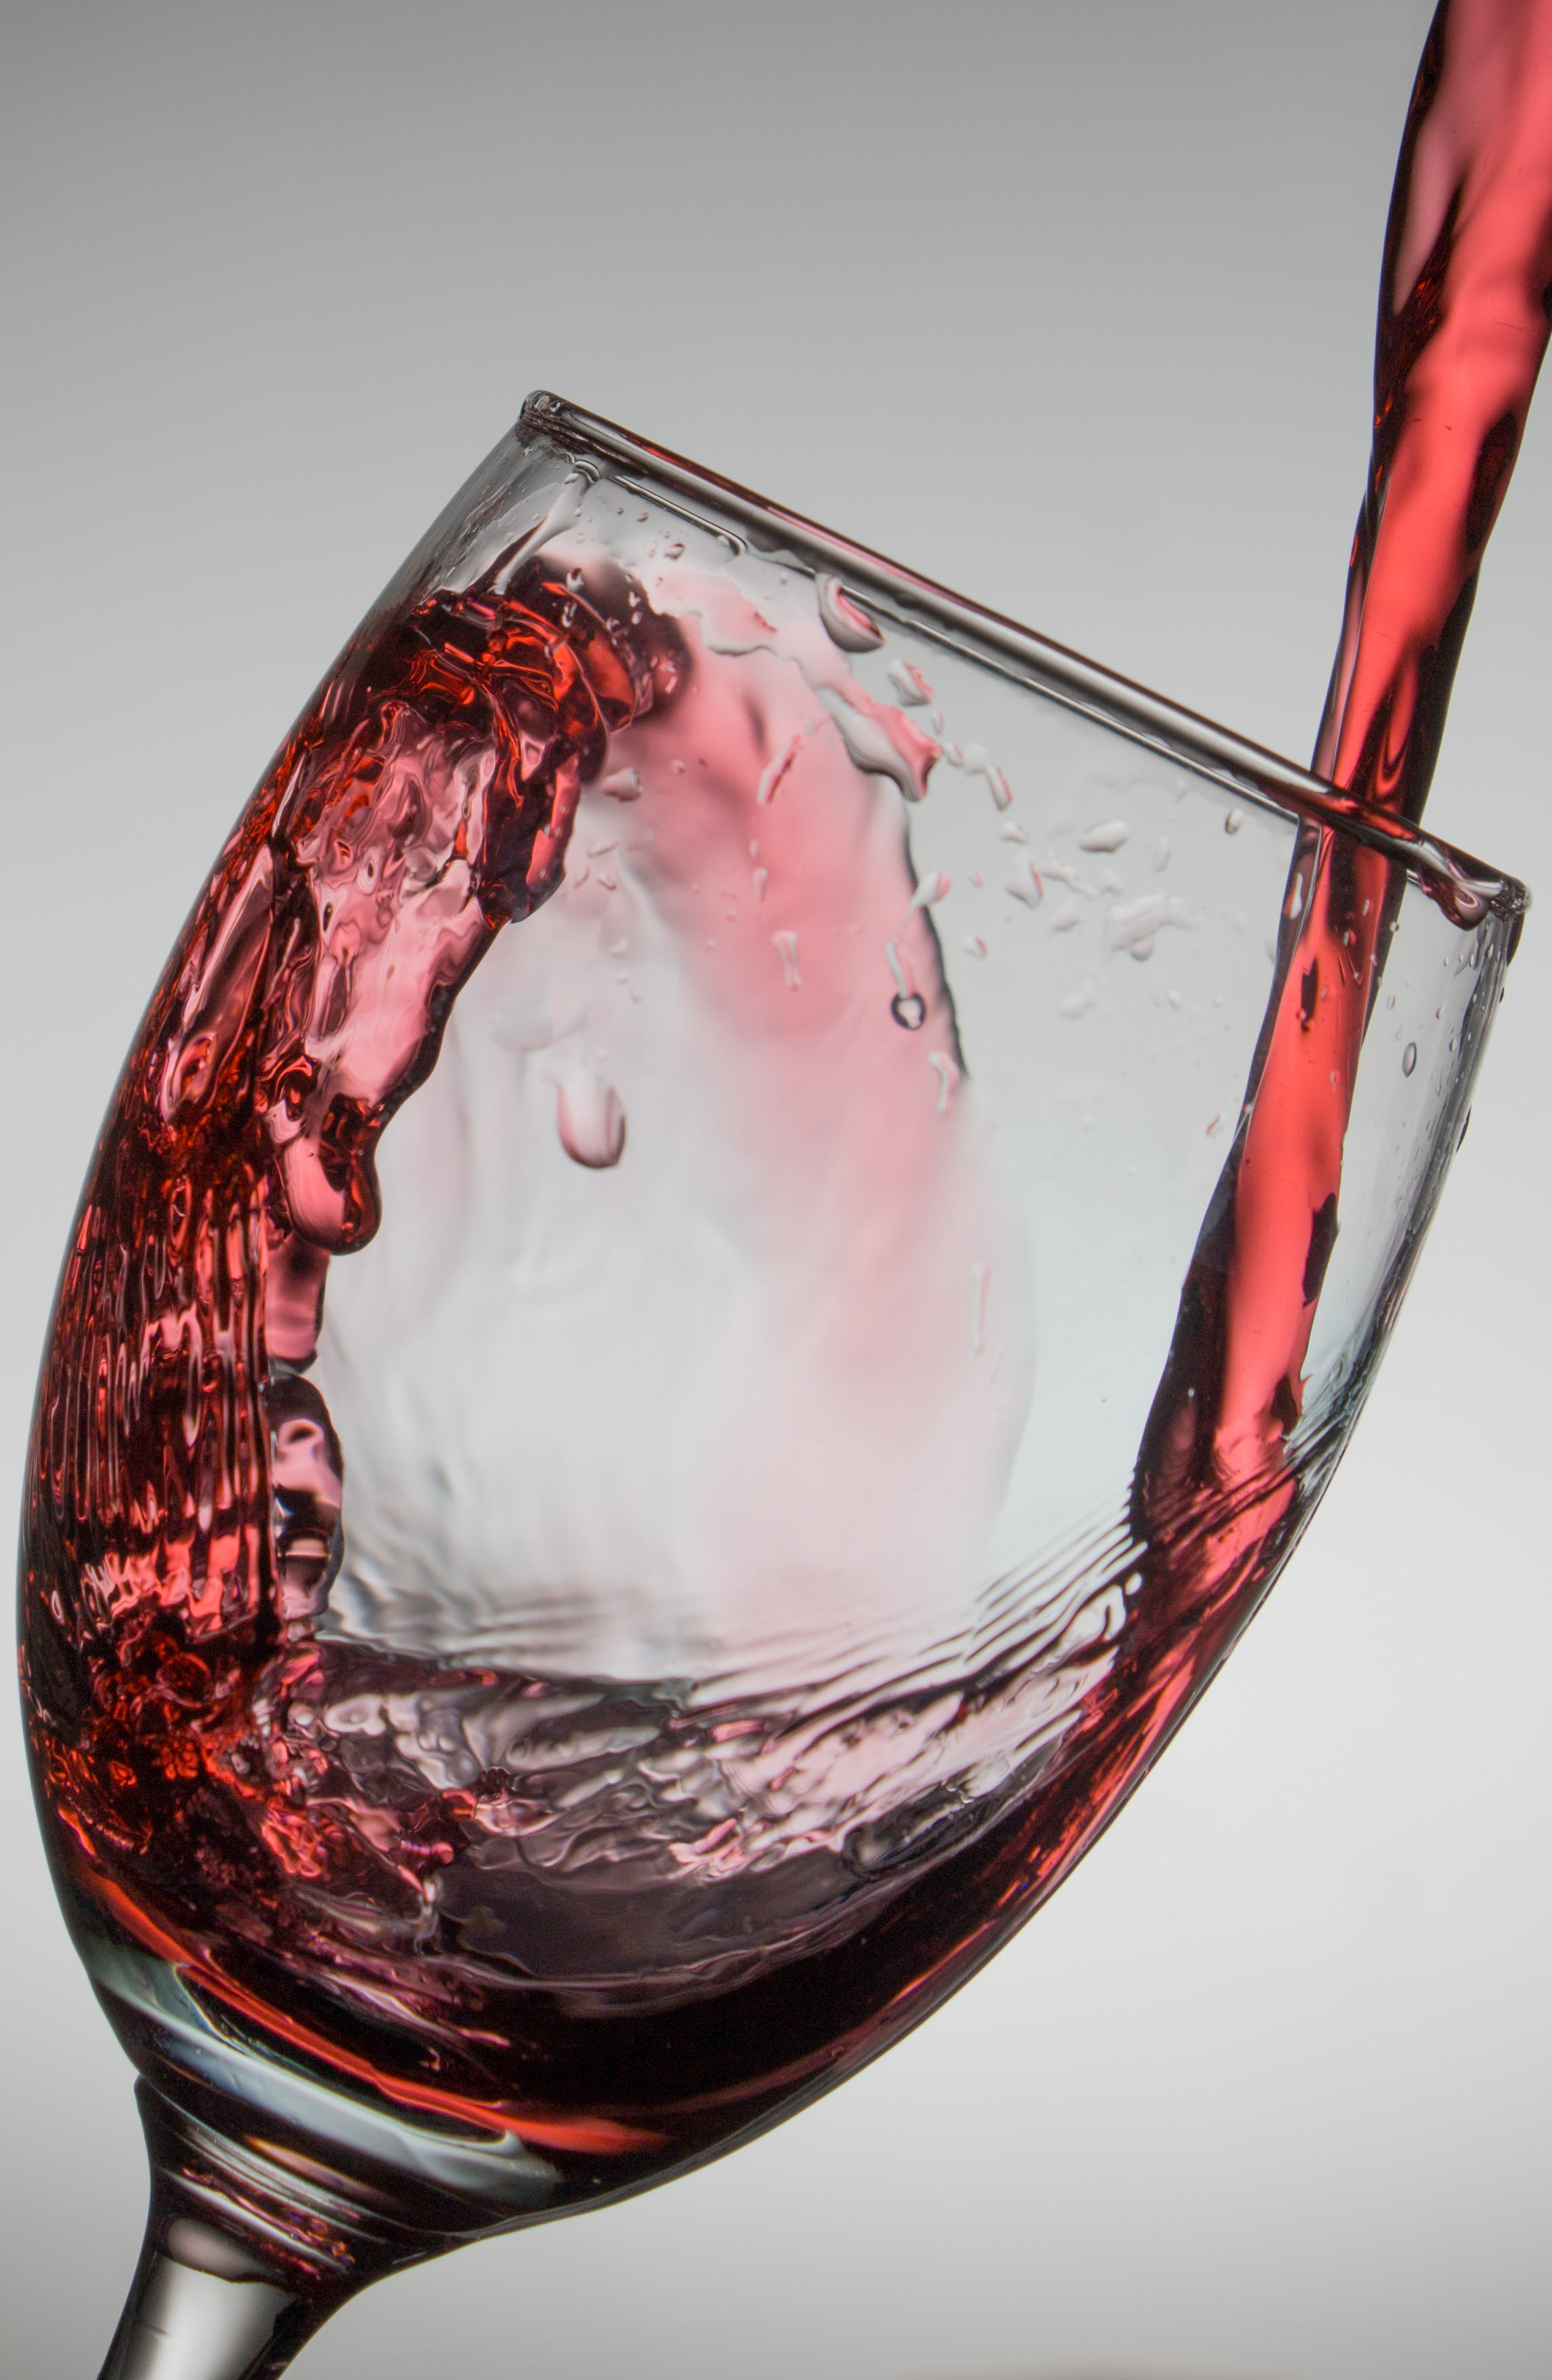 Free stock photo of red wine, classic, cocktail glass, 90